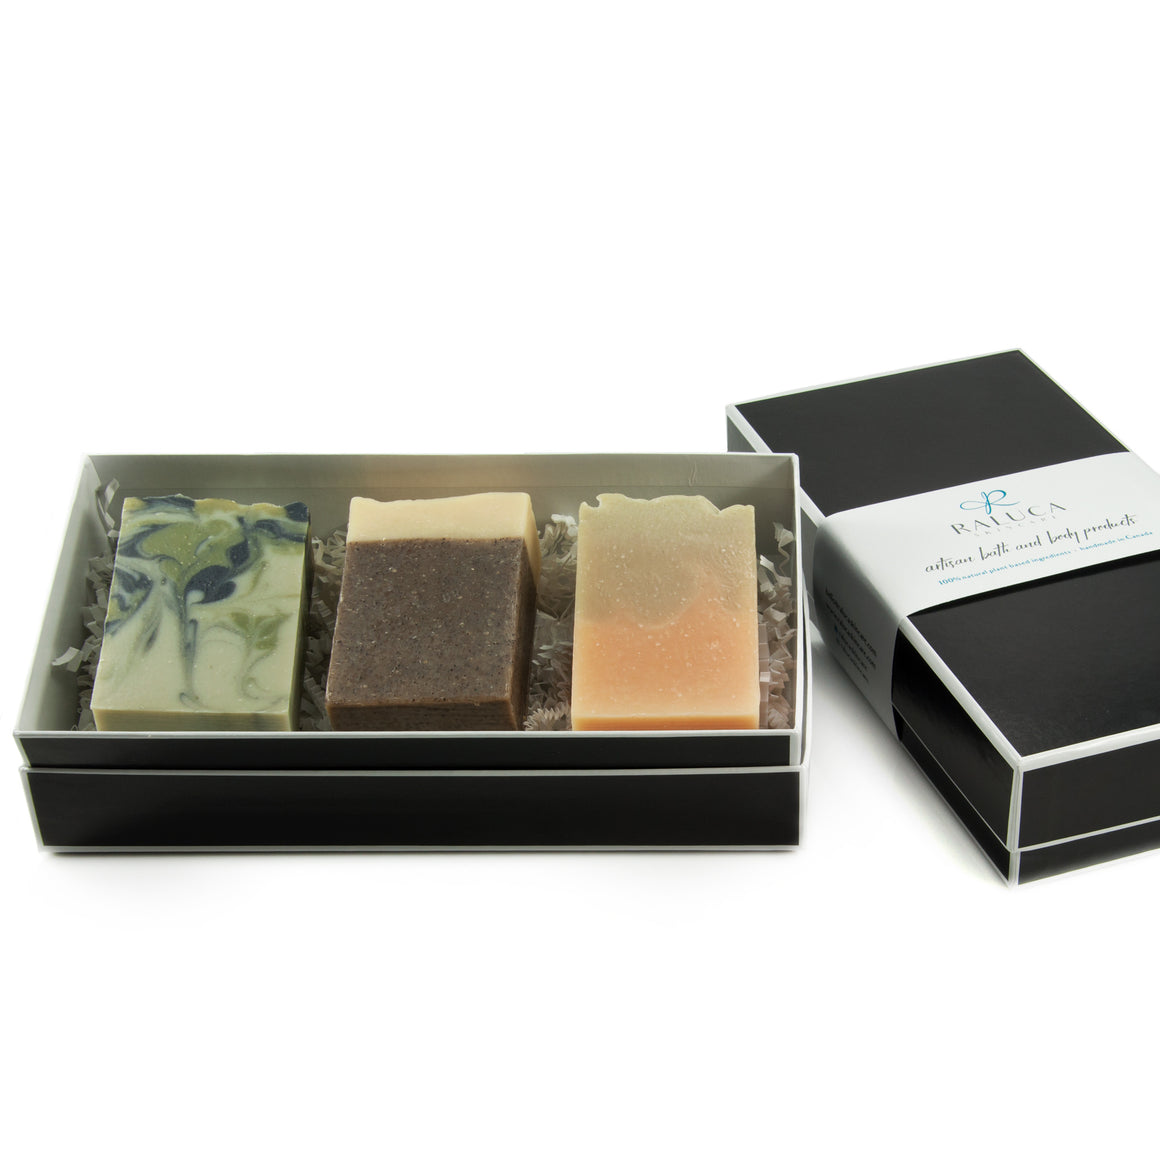 Raluca Skincare - Revive Artisan Soap Set - Three artisan soaps